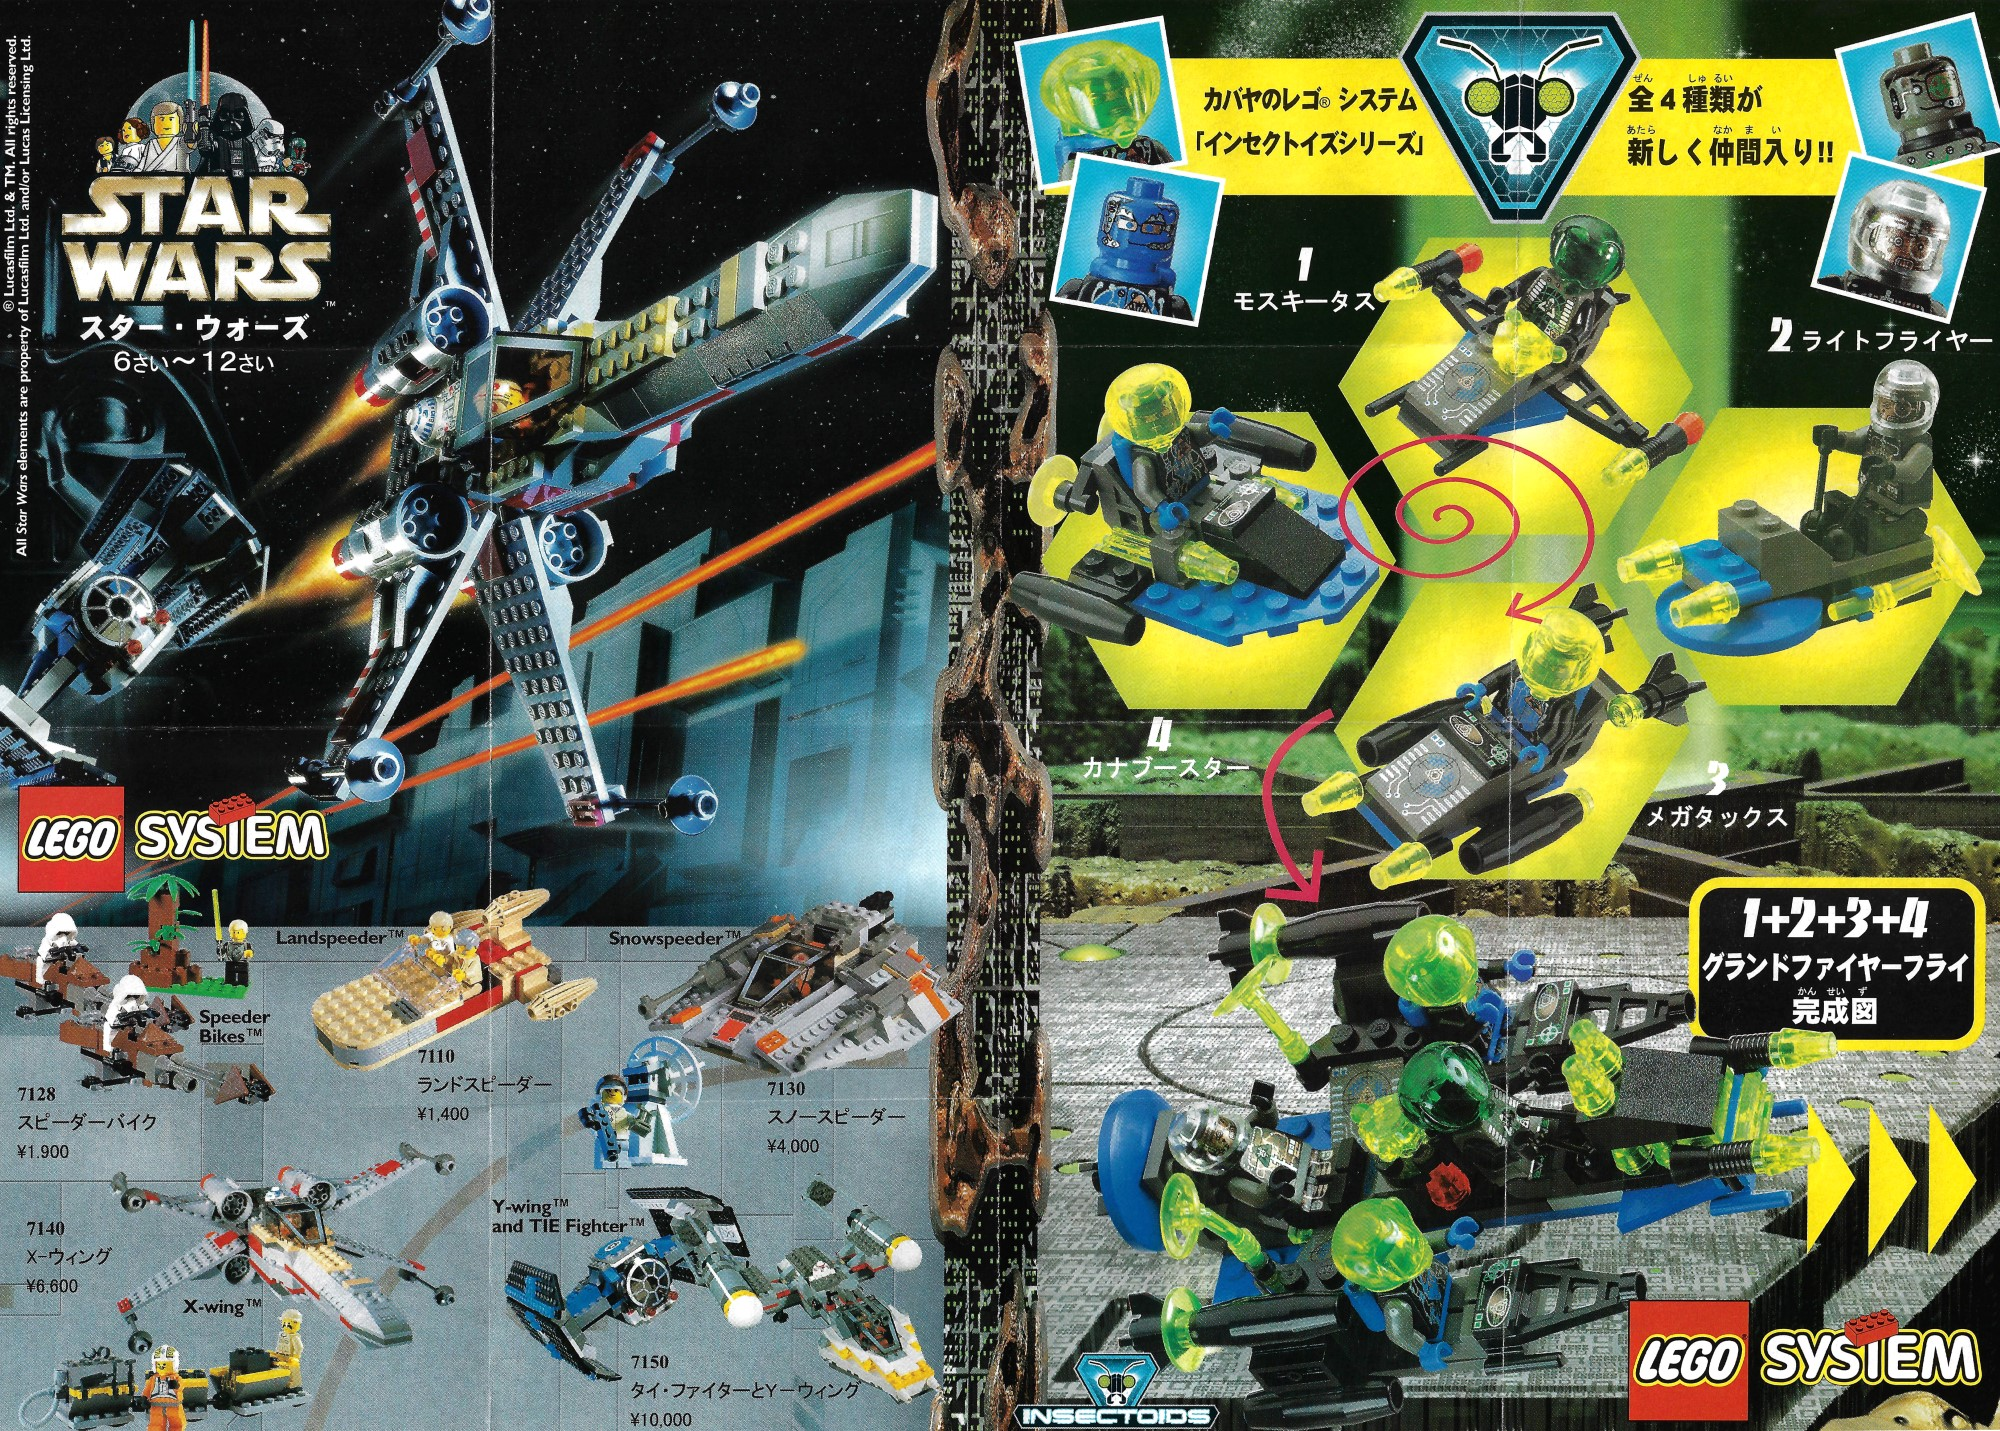 LEGO Insectoids Kabaya 3073 Booster Anleitung Multimodell Und Katalog